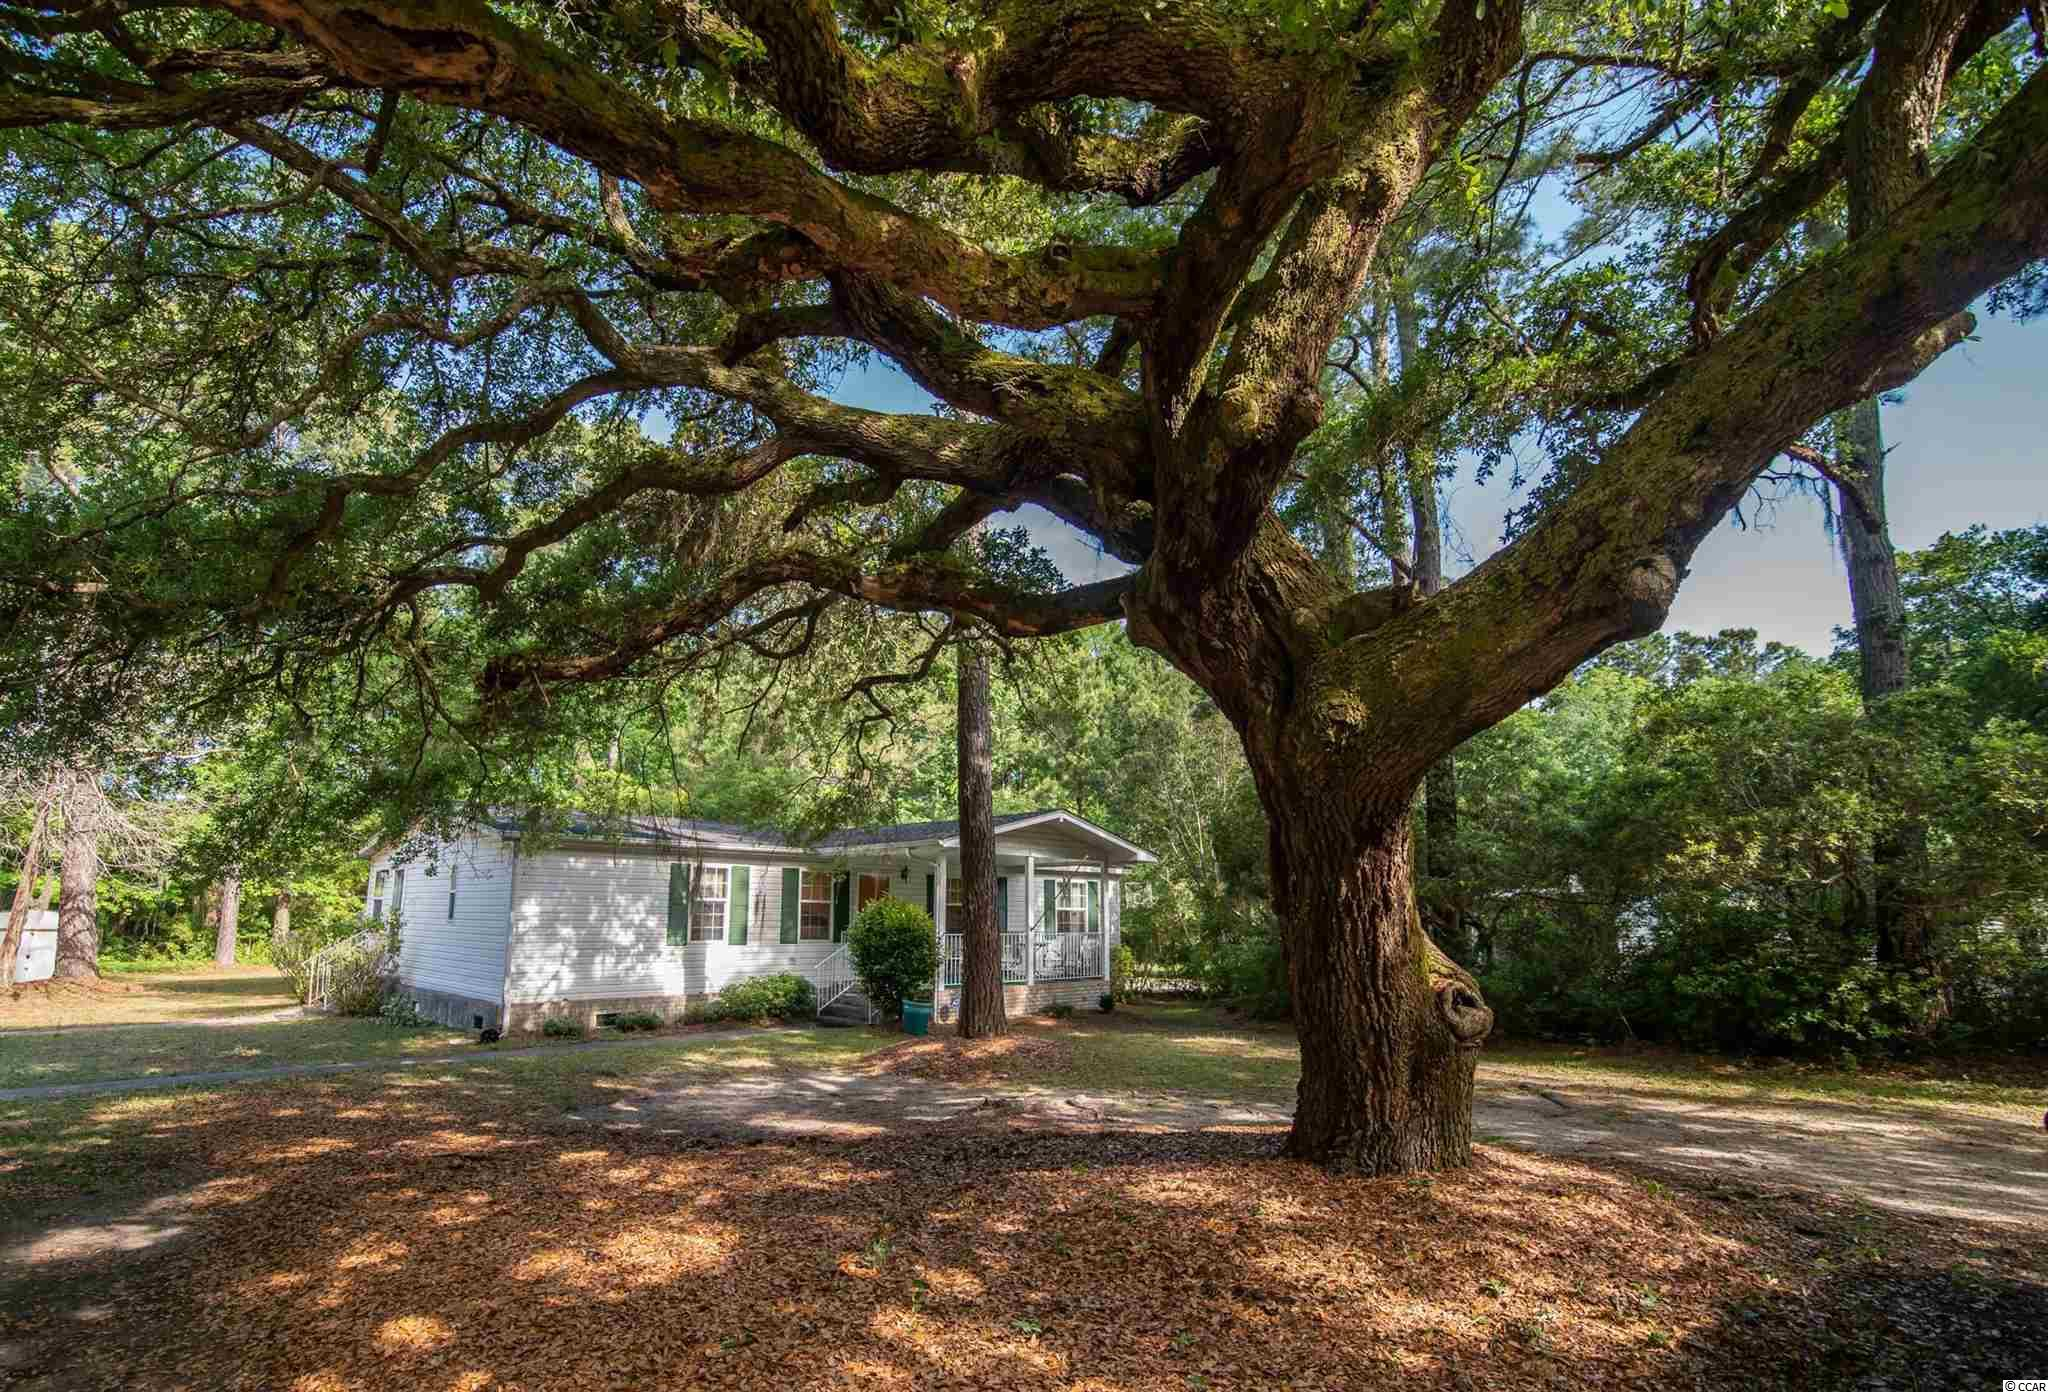 Three bedroom two bath home on one acre under a majestic live oak tree. This large shaded and wooded lot backs up to a pond. Well cared for home with newer roof and HVAC enjoys a covered front porch, screened back porch, and detached storage. Central location close to beaches, golf, and waterway.